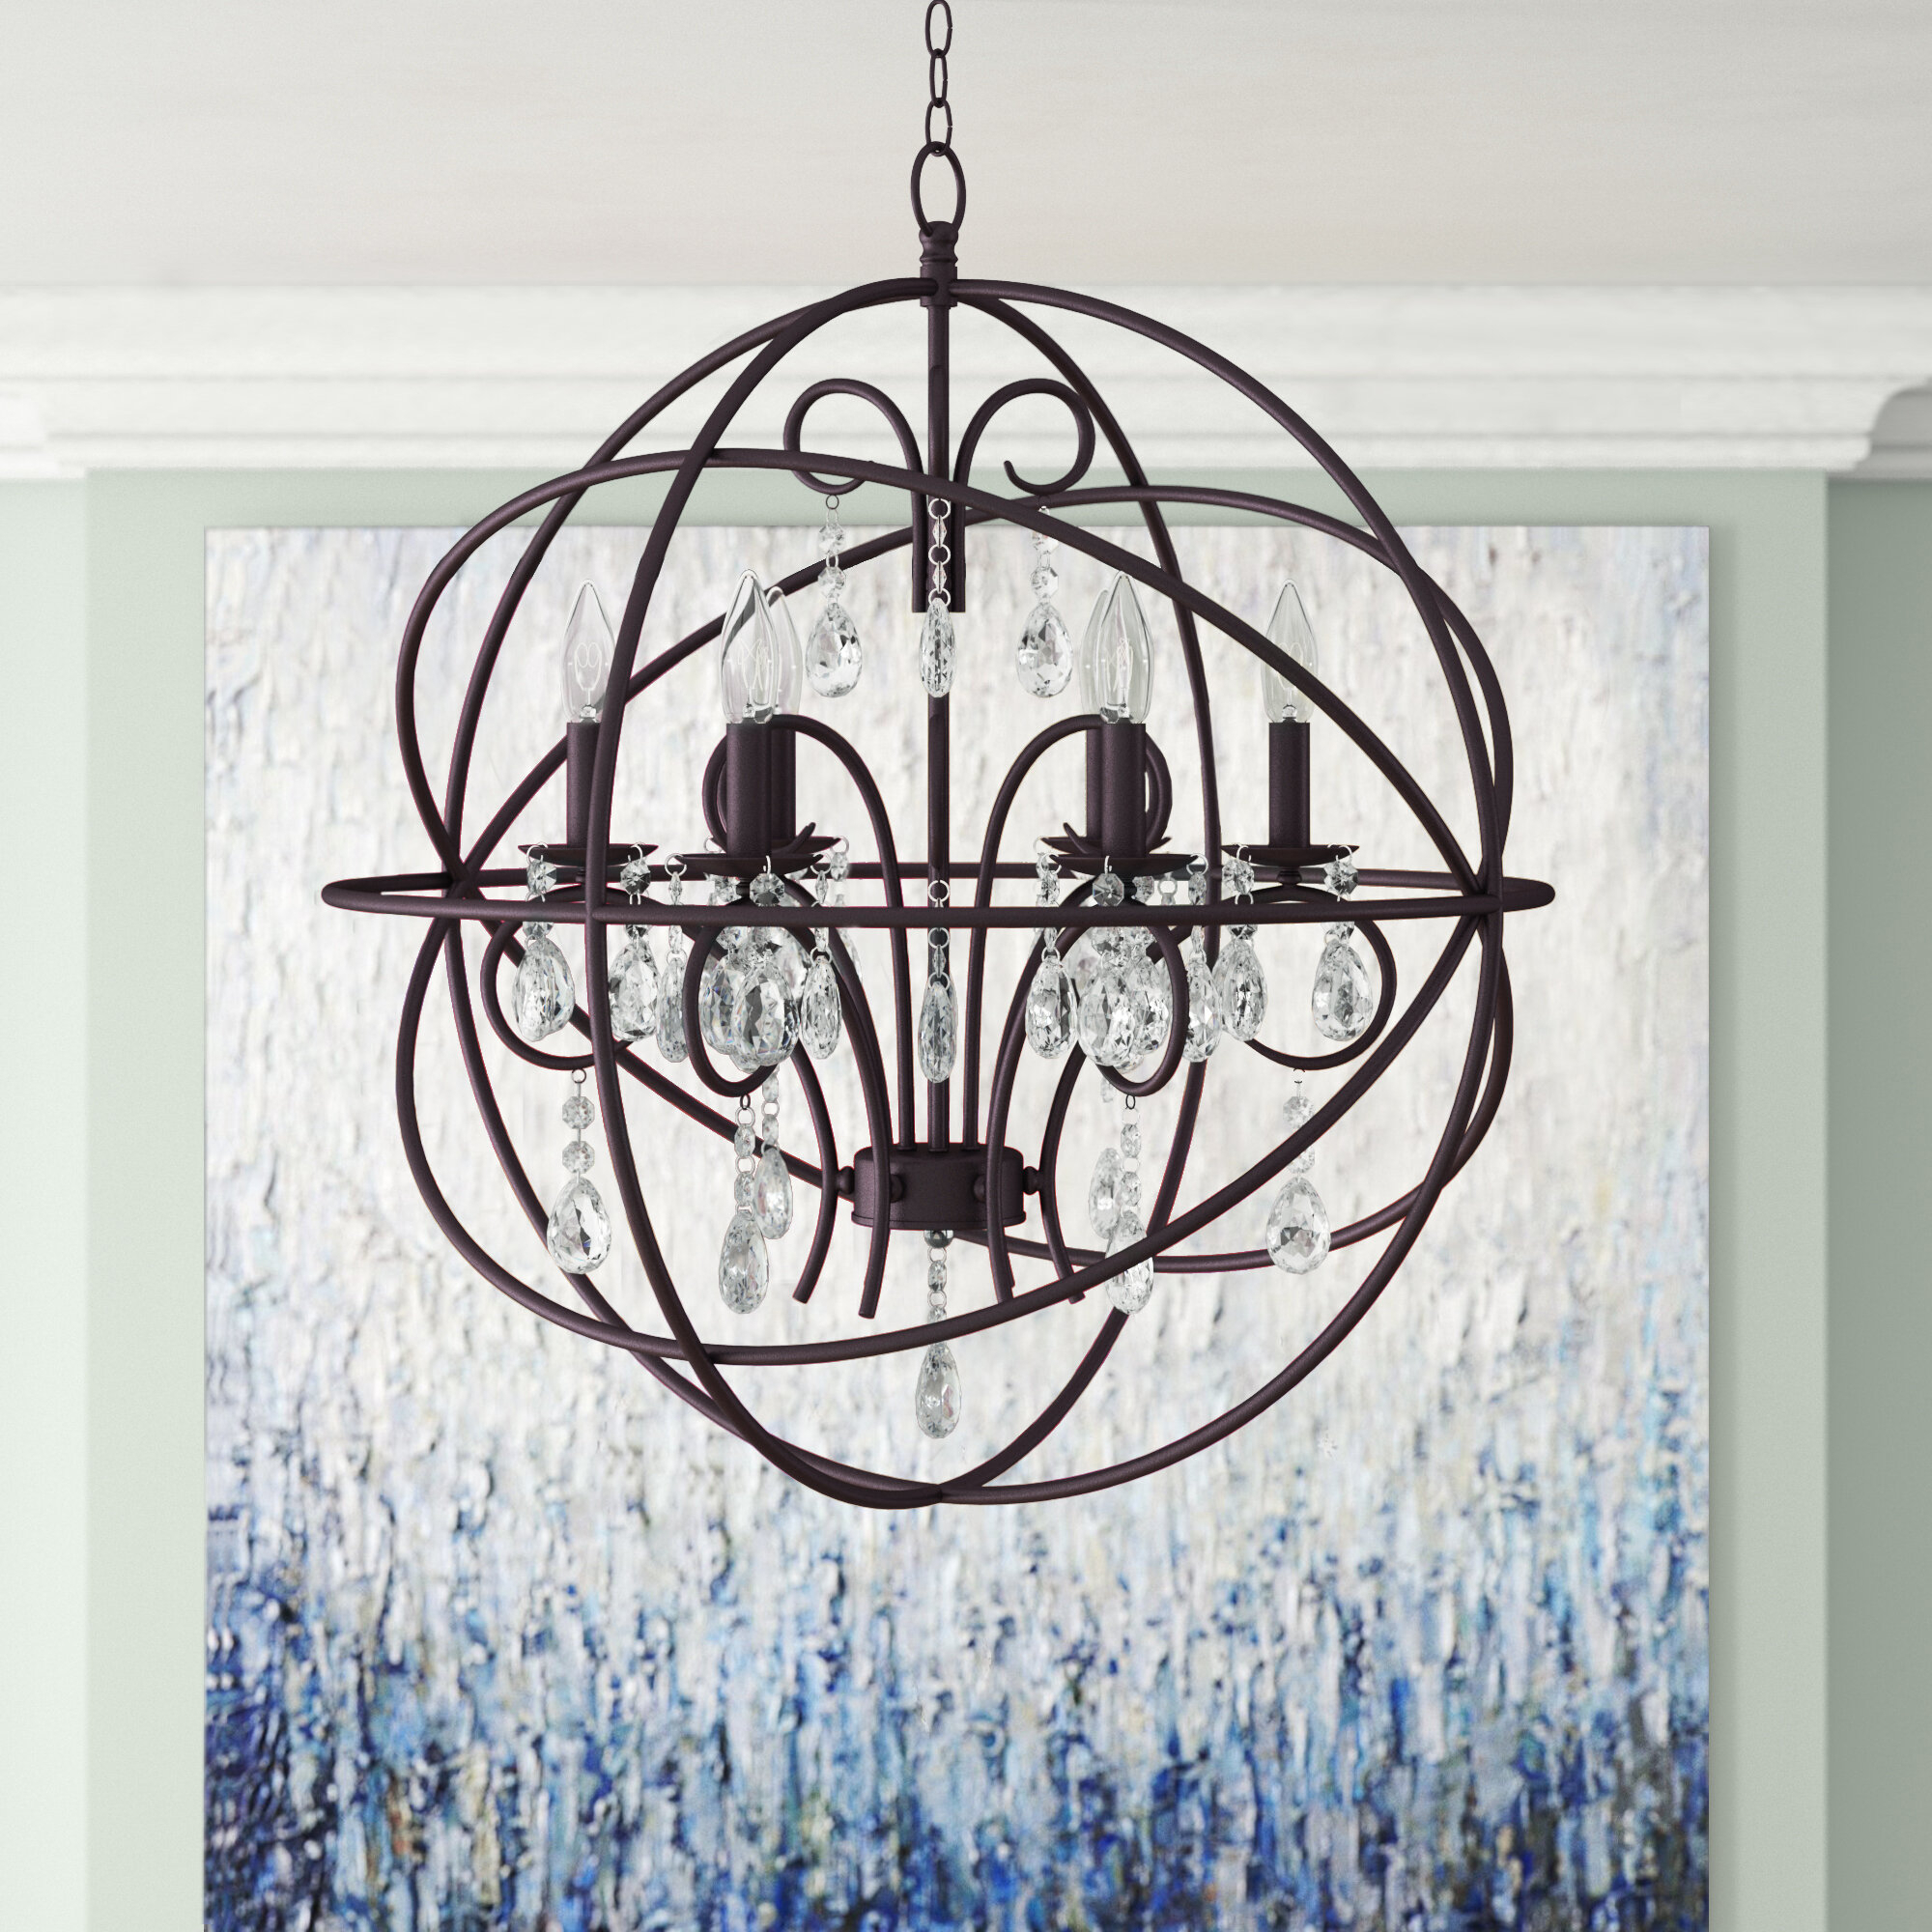 Willa Arlo Interiors Alden 6-Light Globe Chandelier within Joon 6-Light Globe Chandeliers (Image 28 of 30)